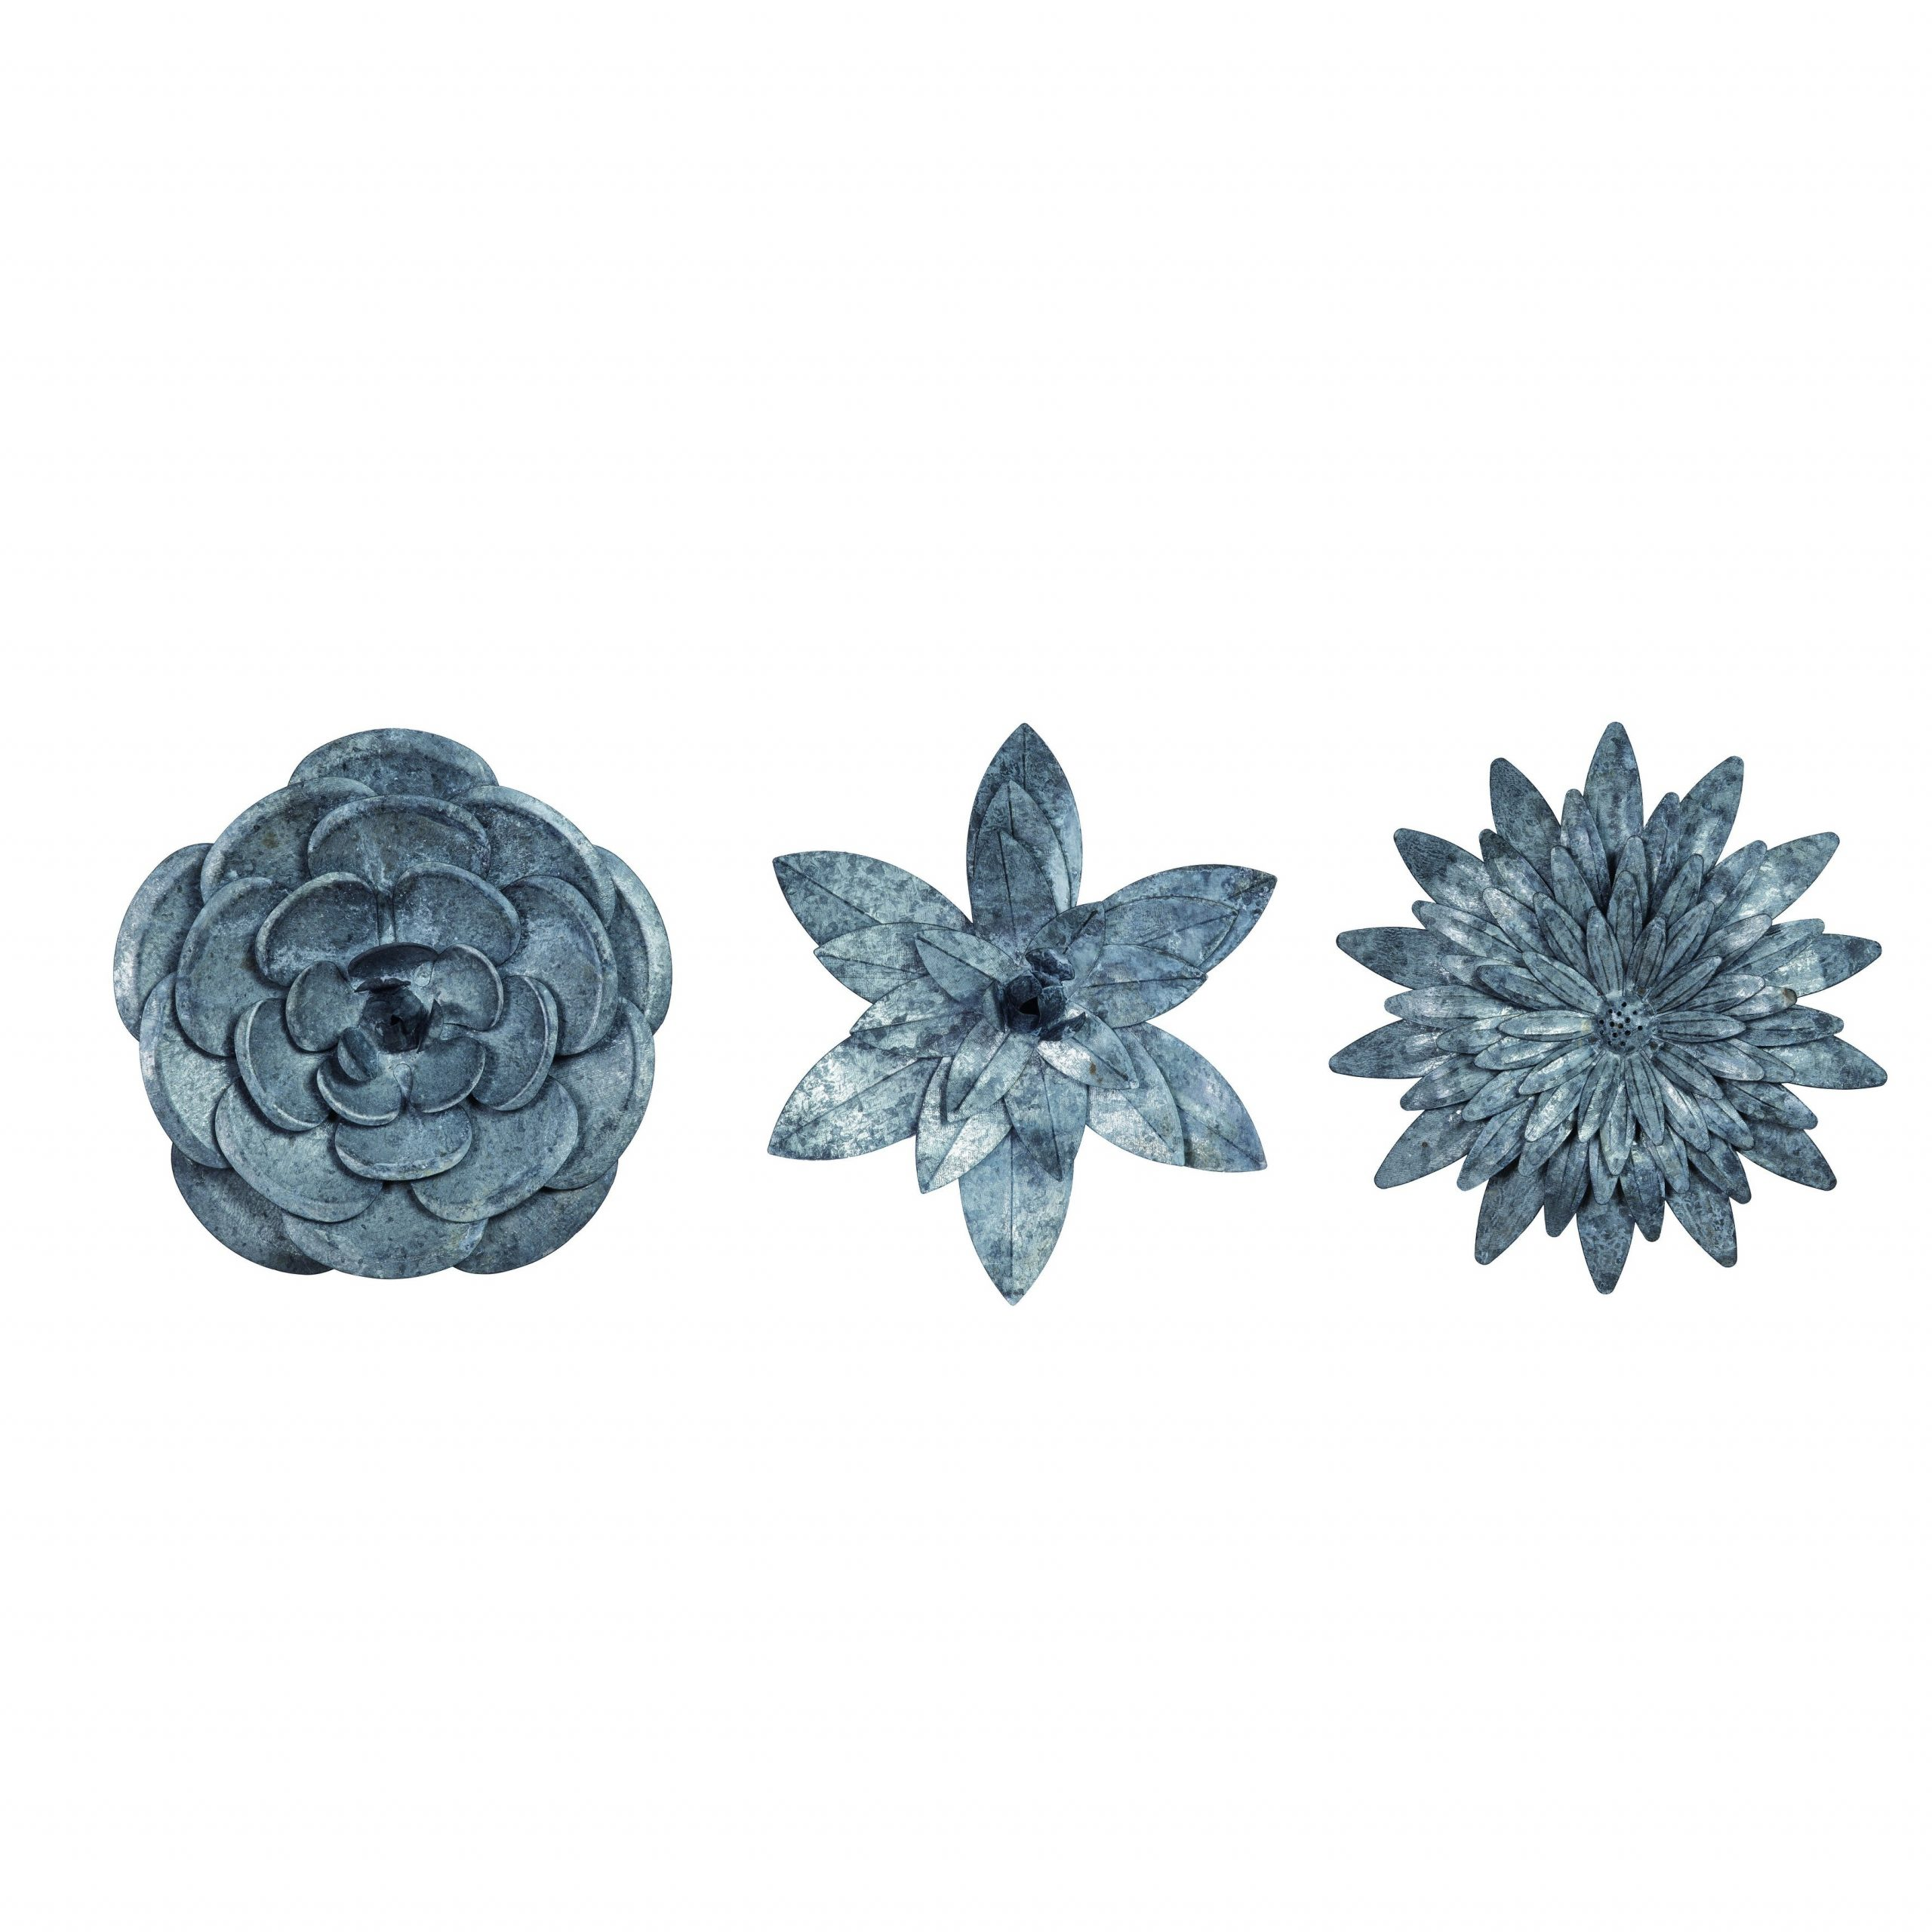 3 Piece Metal Flower Wall Décor Set Intended For Preferred Transpac Metal Silver Spring Dimensional Flower Wall Art Set Of (View 12 of 20)